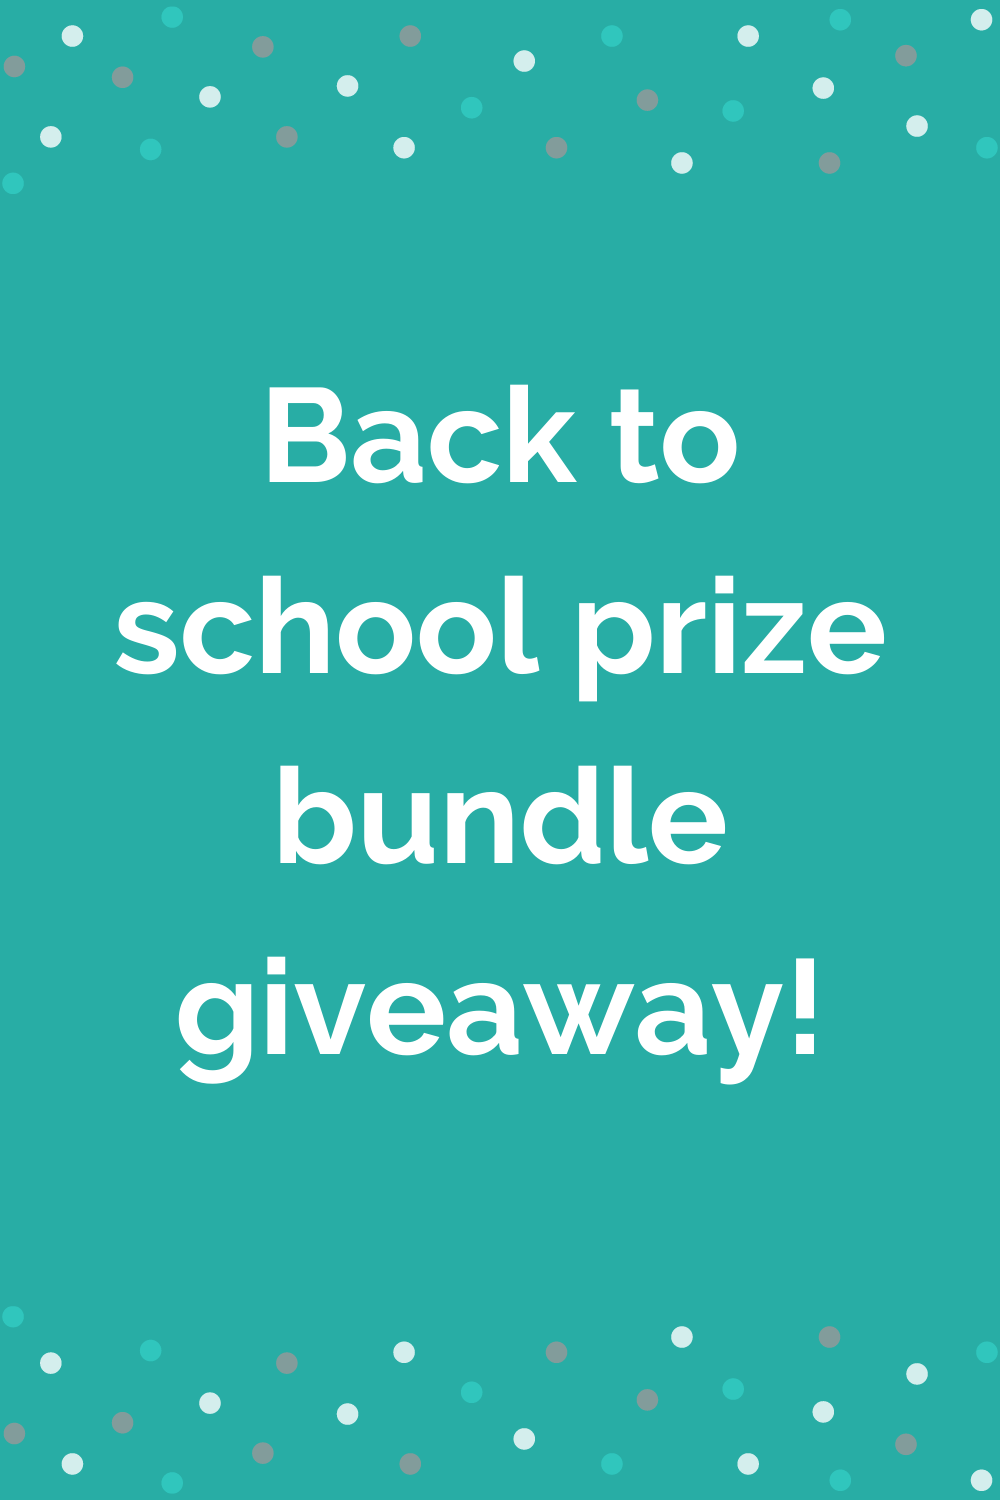 Back to school prize giveaway